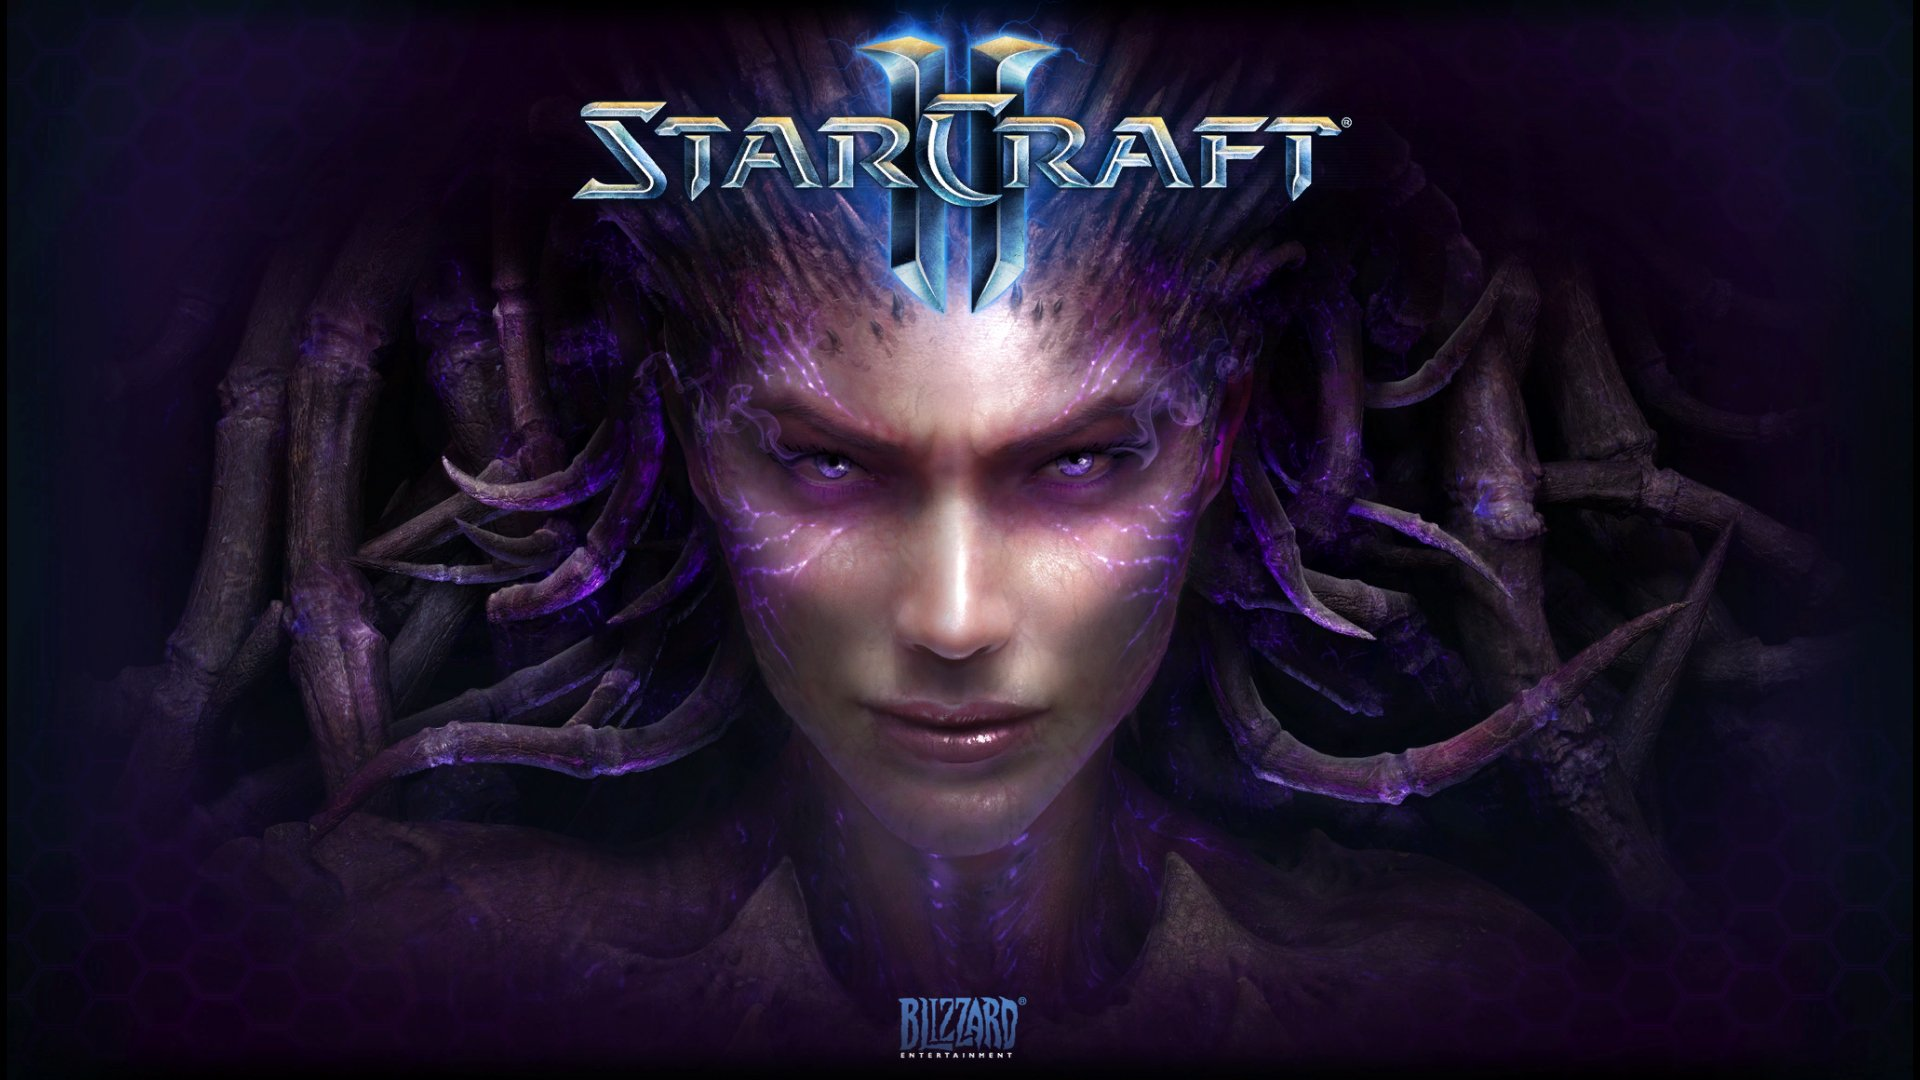 StarCraft II: Heart of the Swarm [cinematic] - Изображение 1